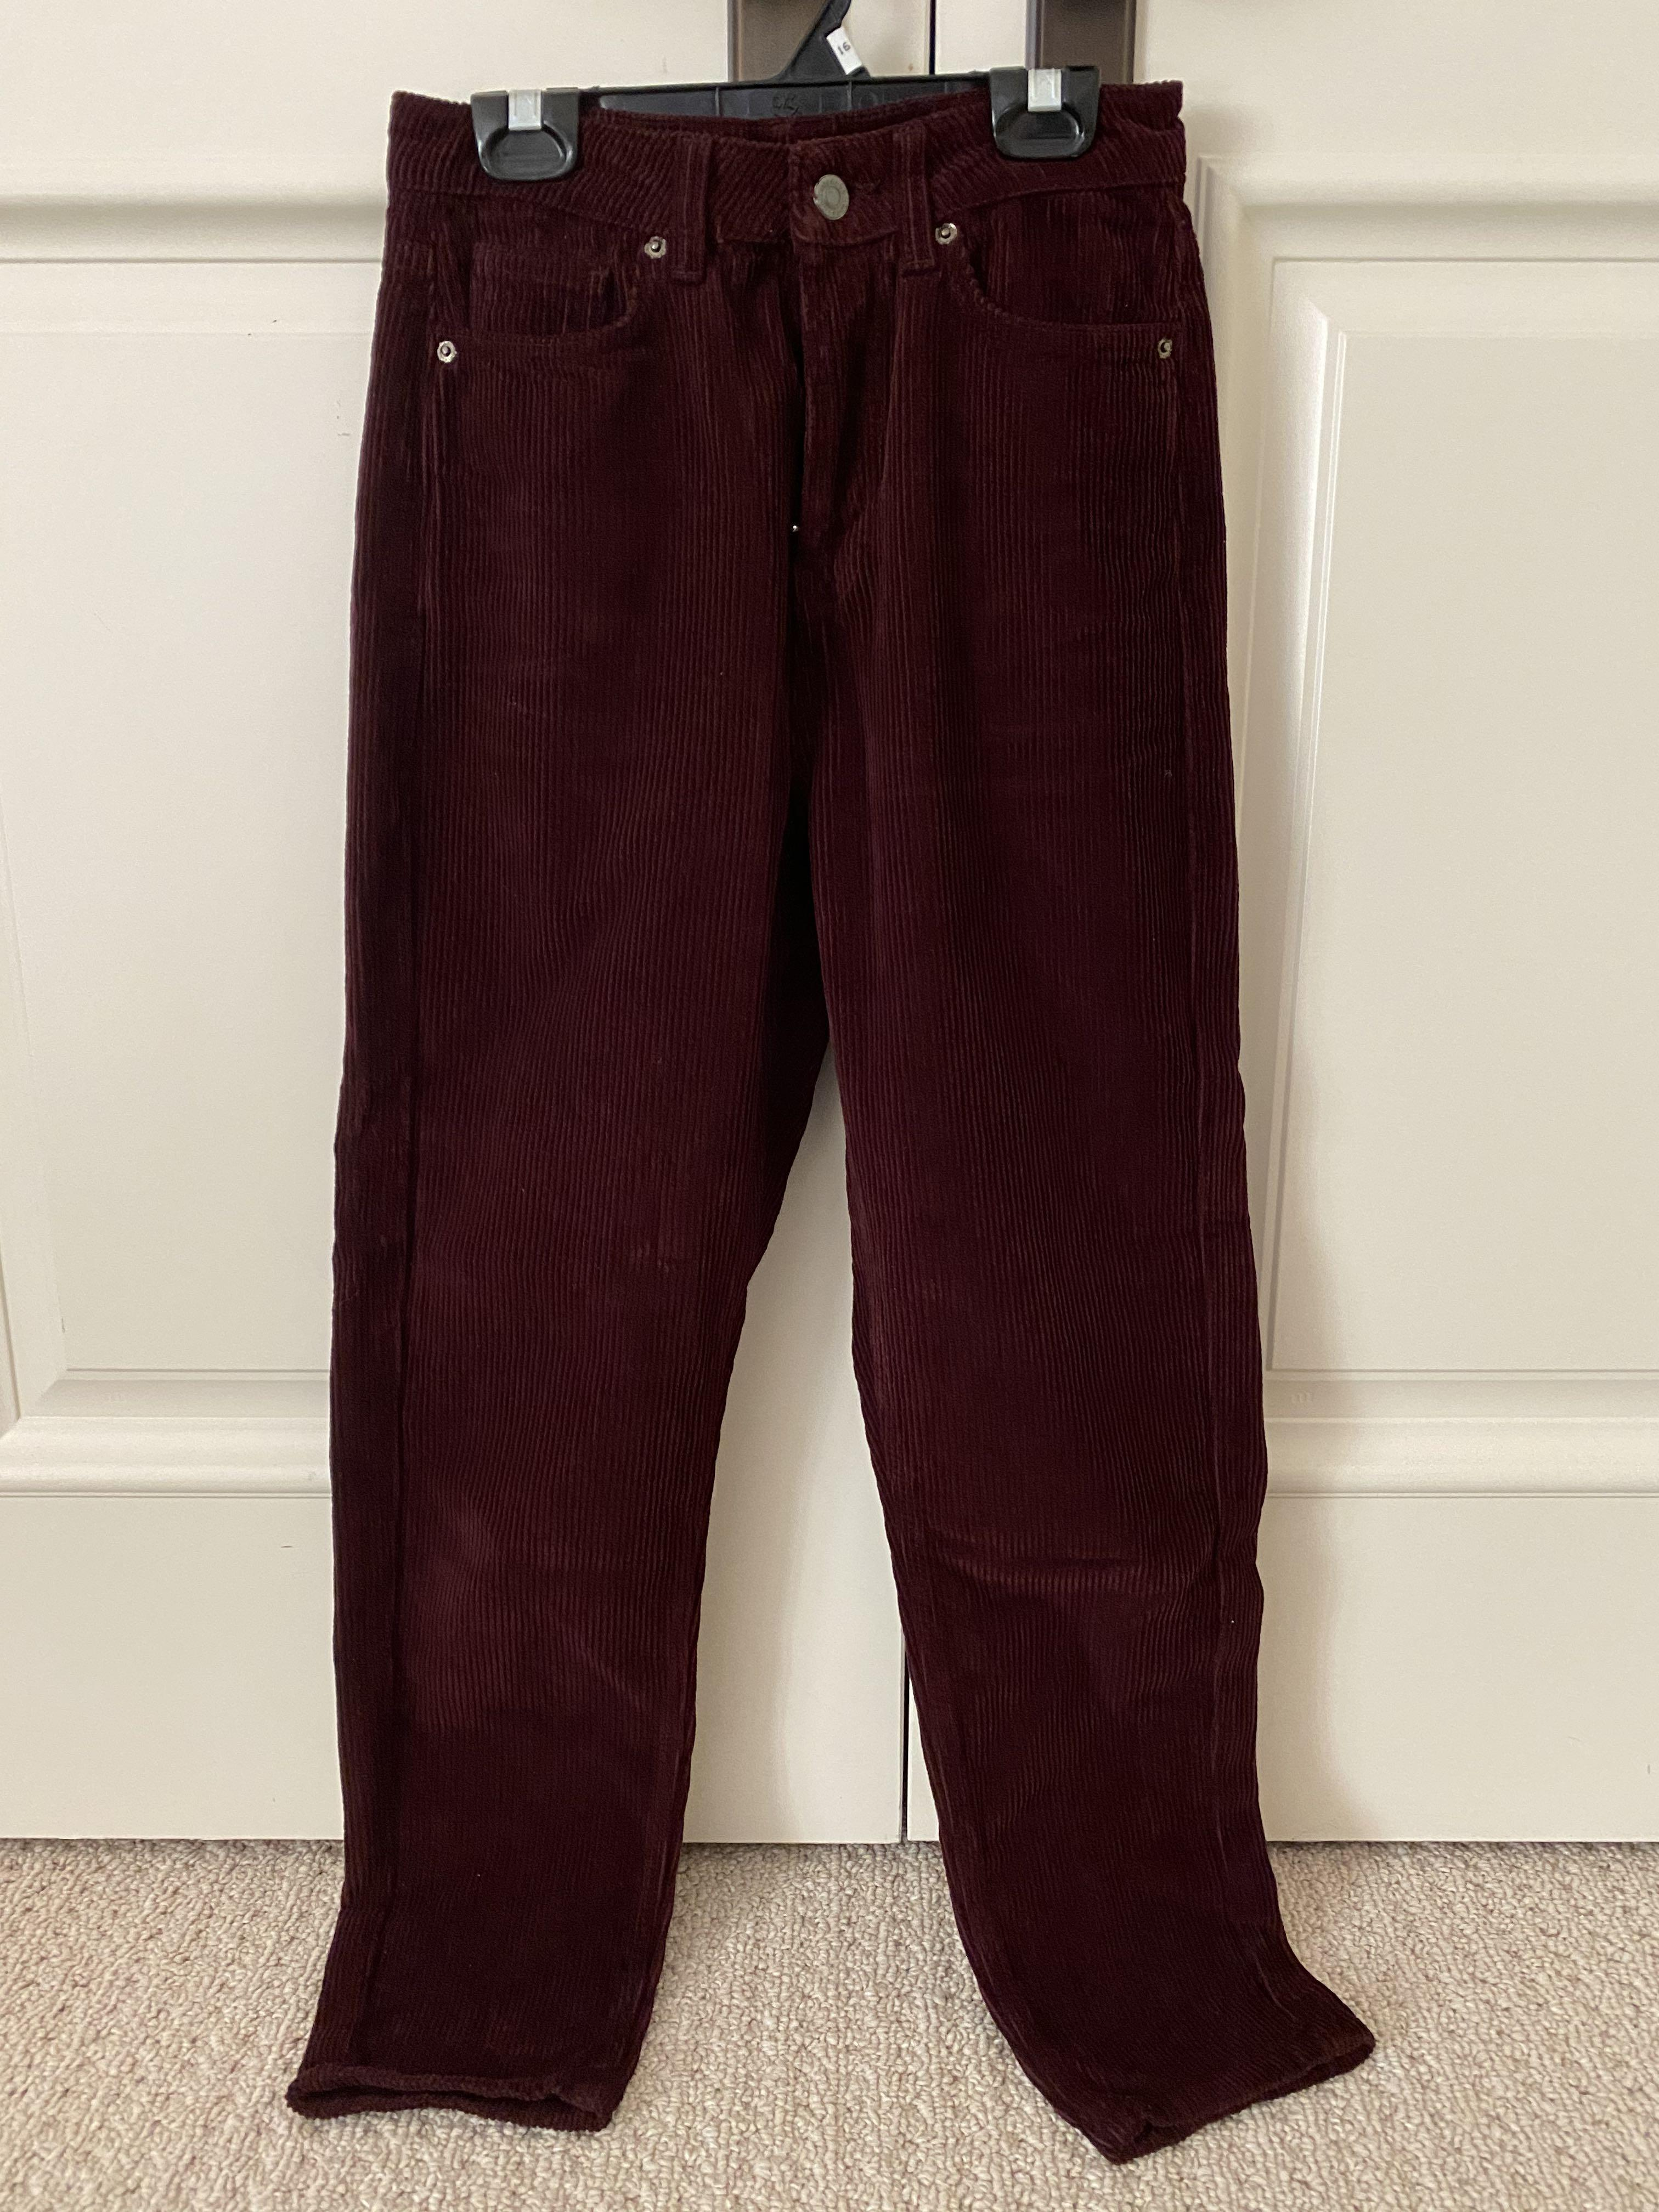 Topshop High Wasted Corduroy Pants